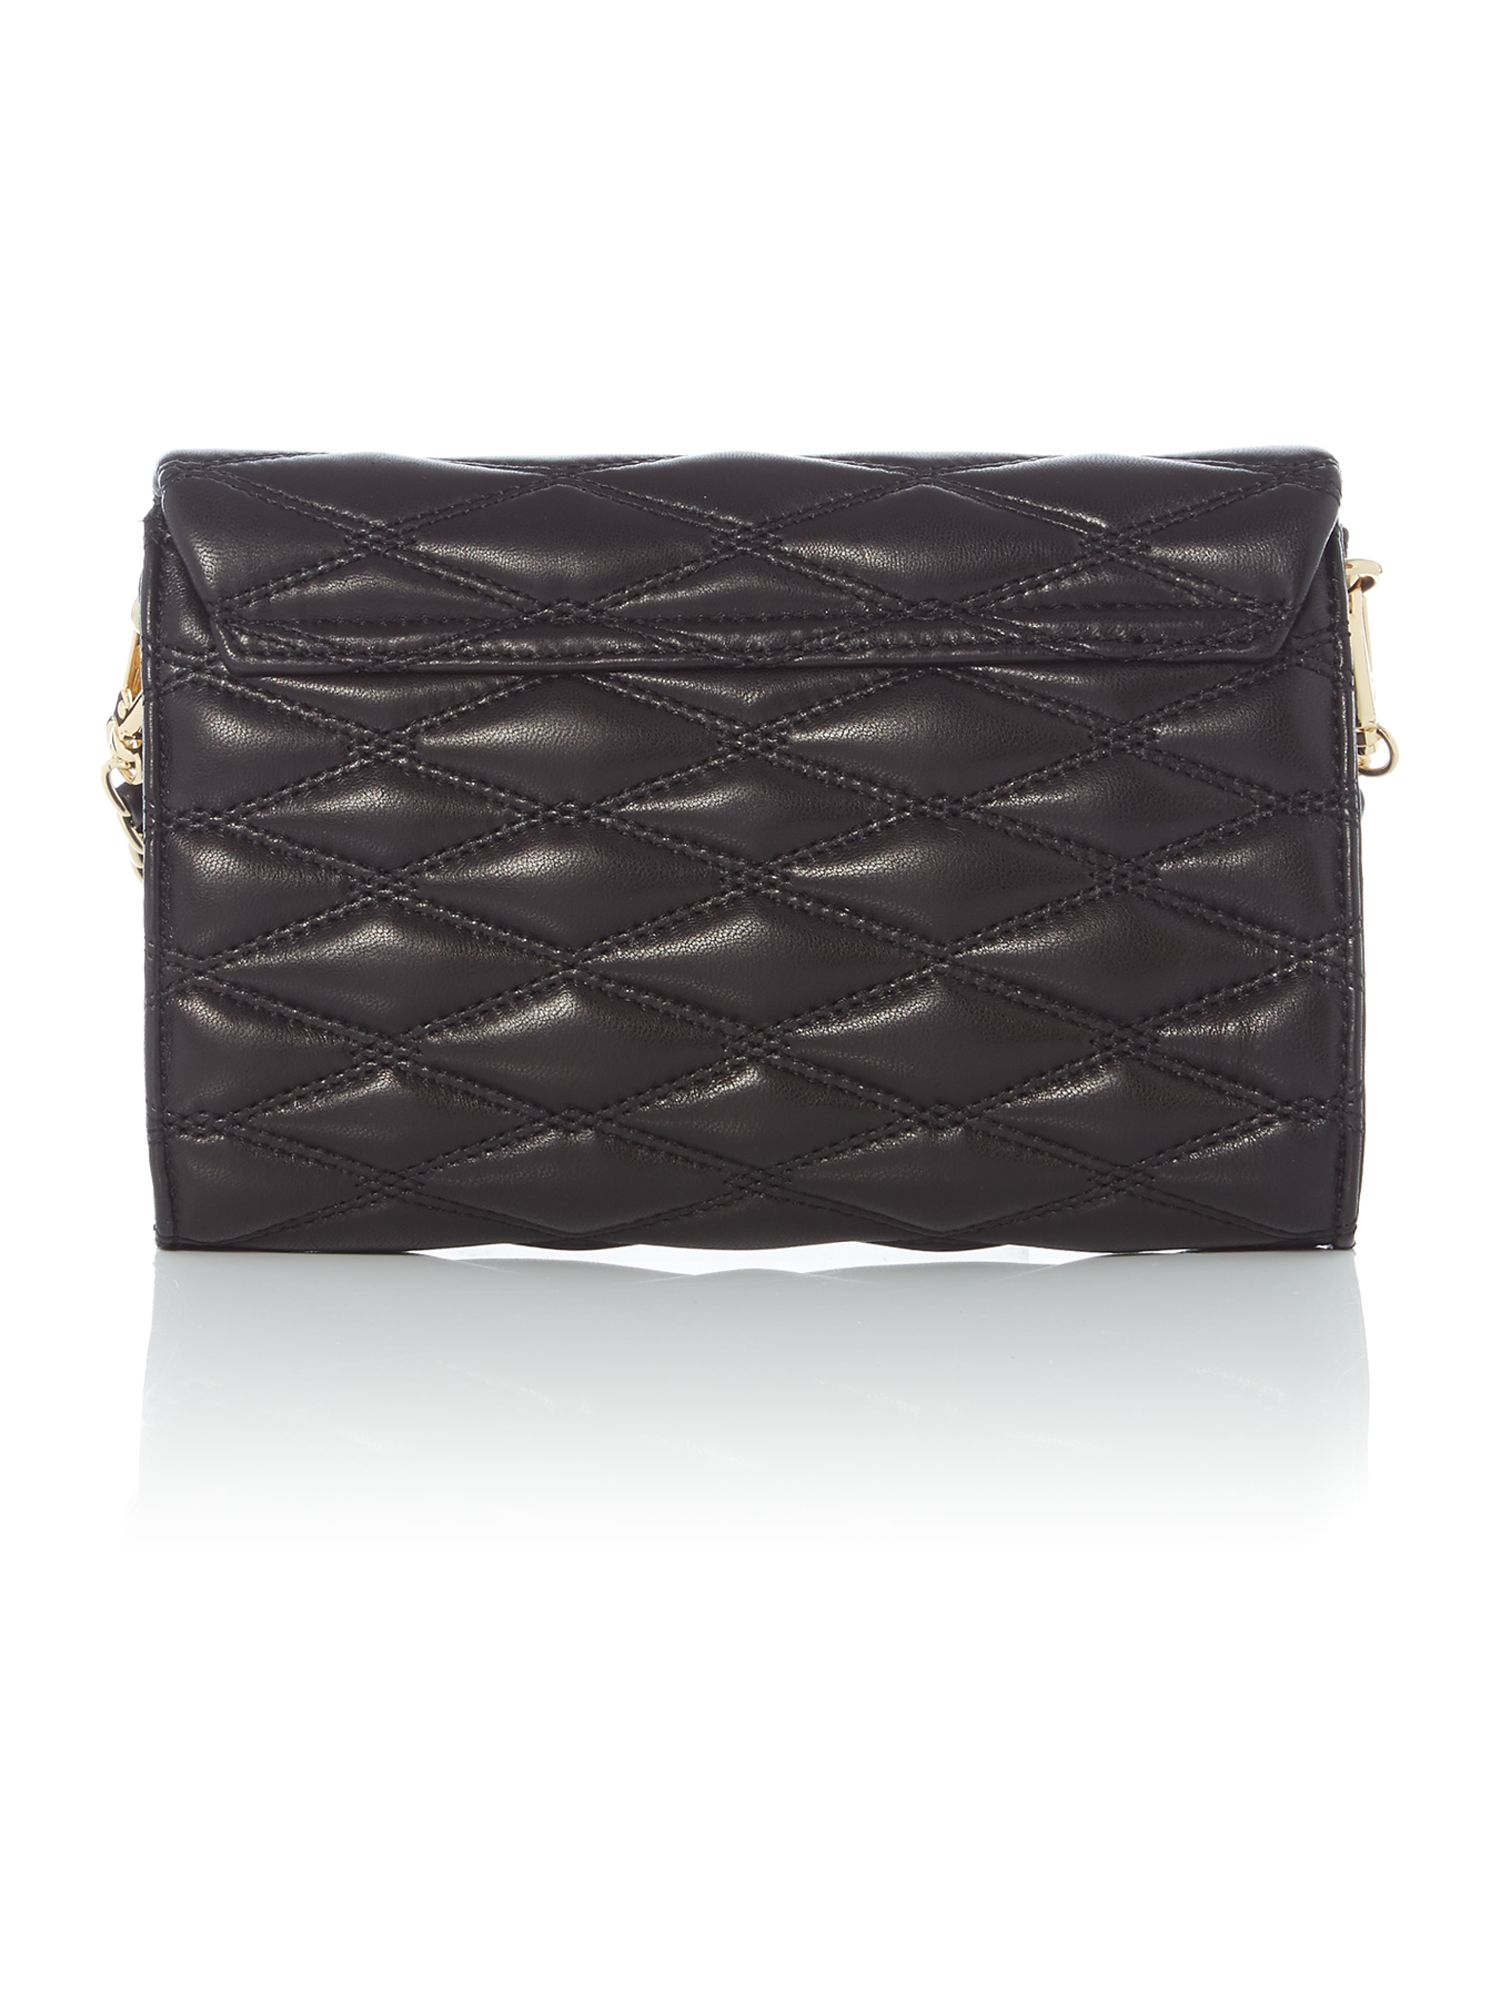 DKNY Leather Quilted Black Small Flapover Chain Crossbody